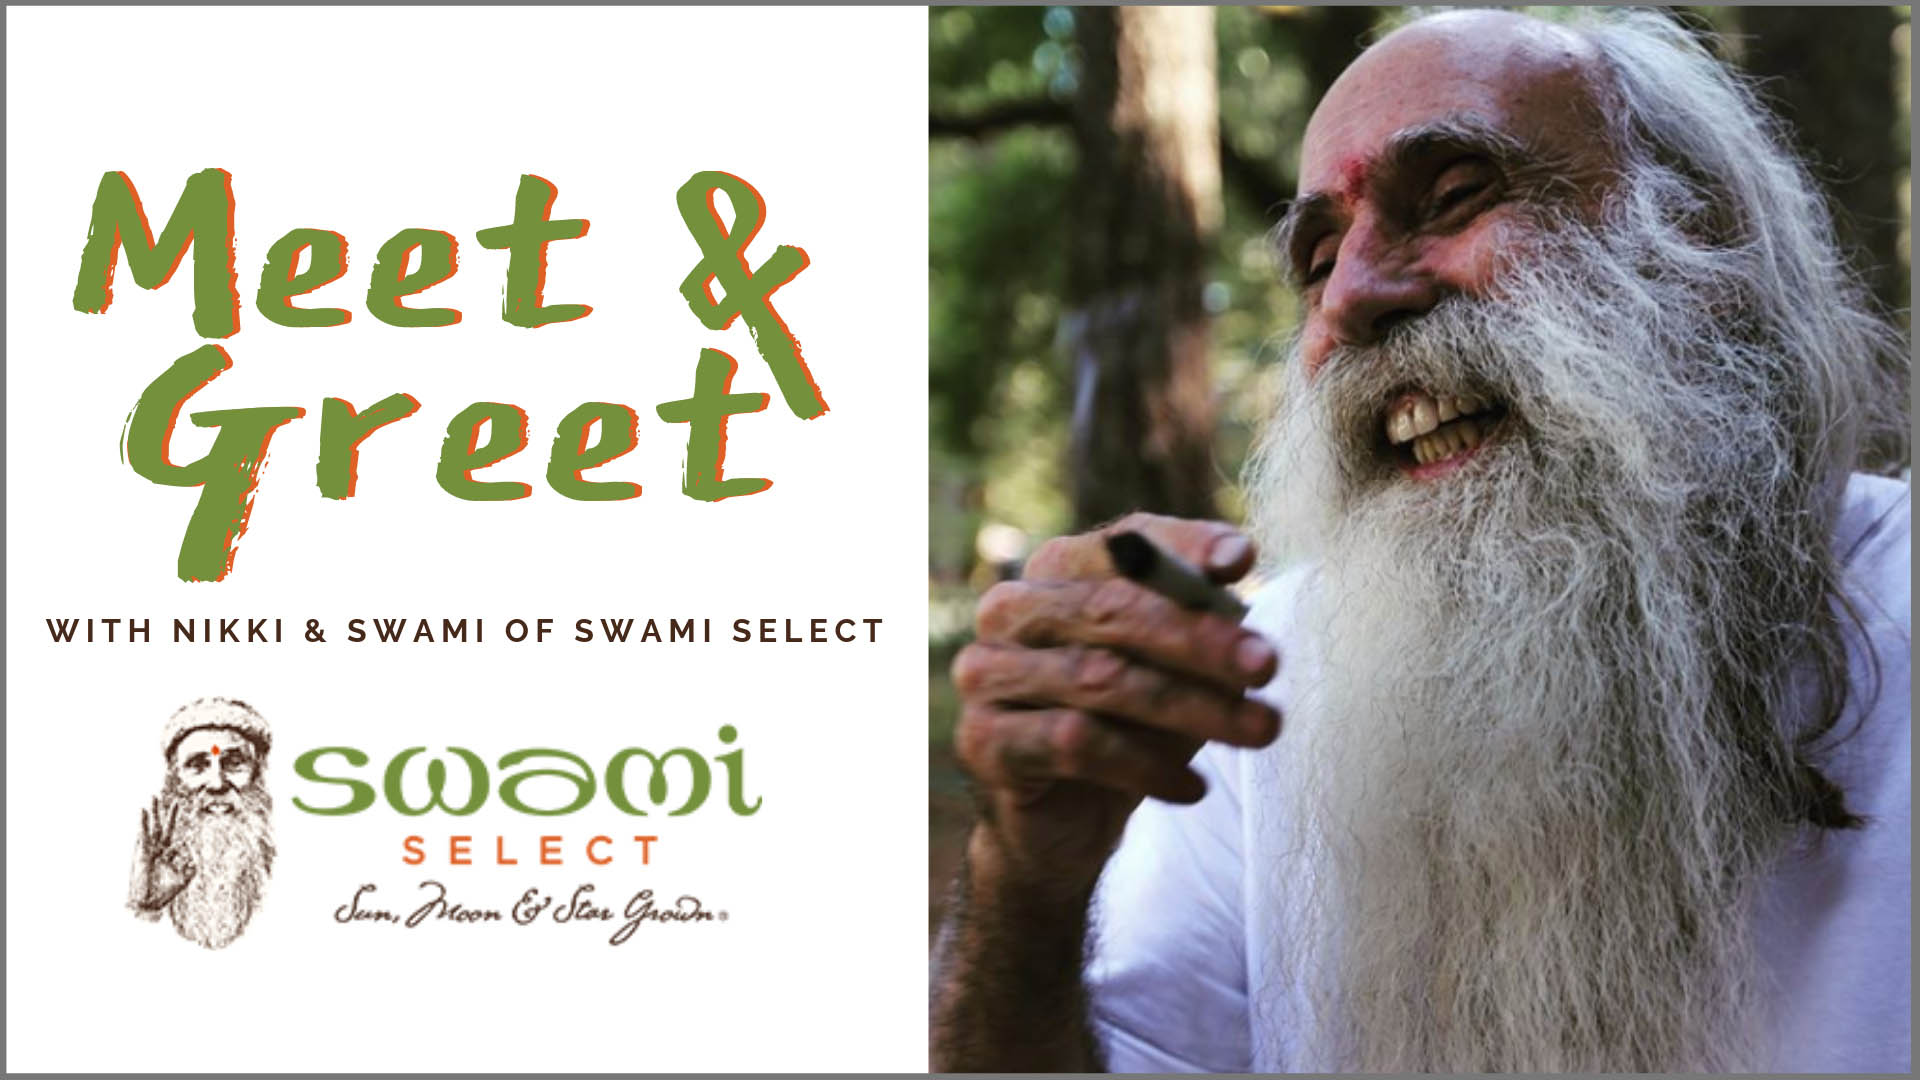 Swami Select In Store Meet & Greet: Harborside Oakland